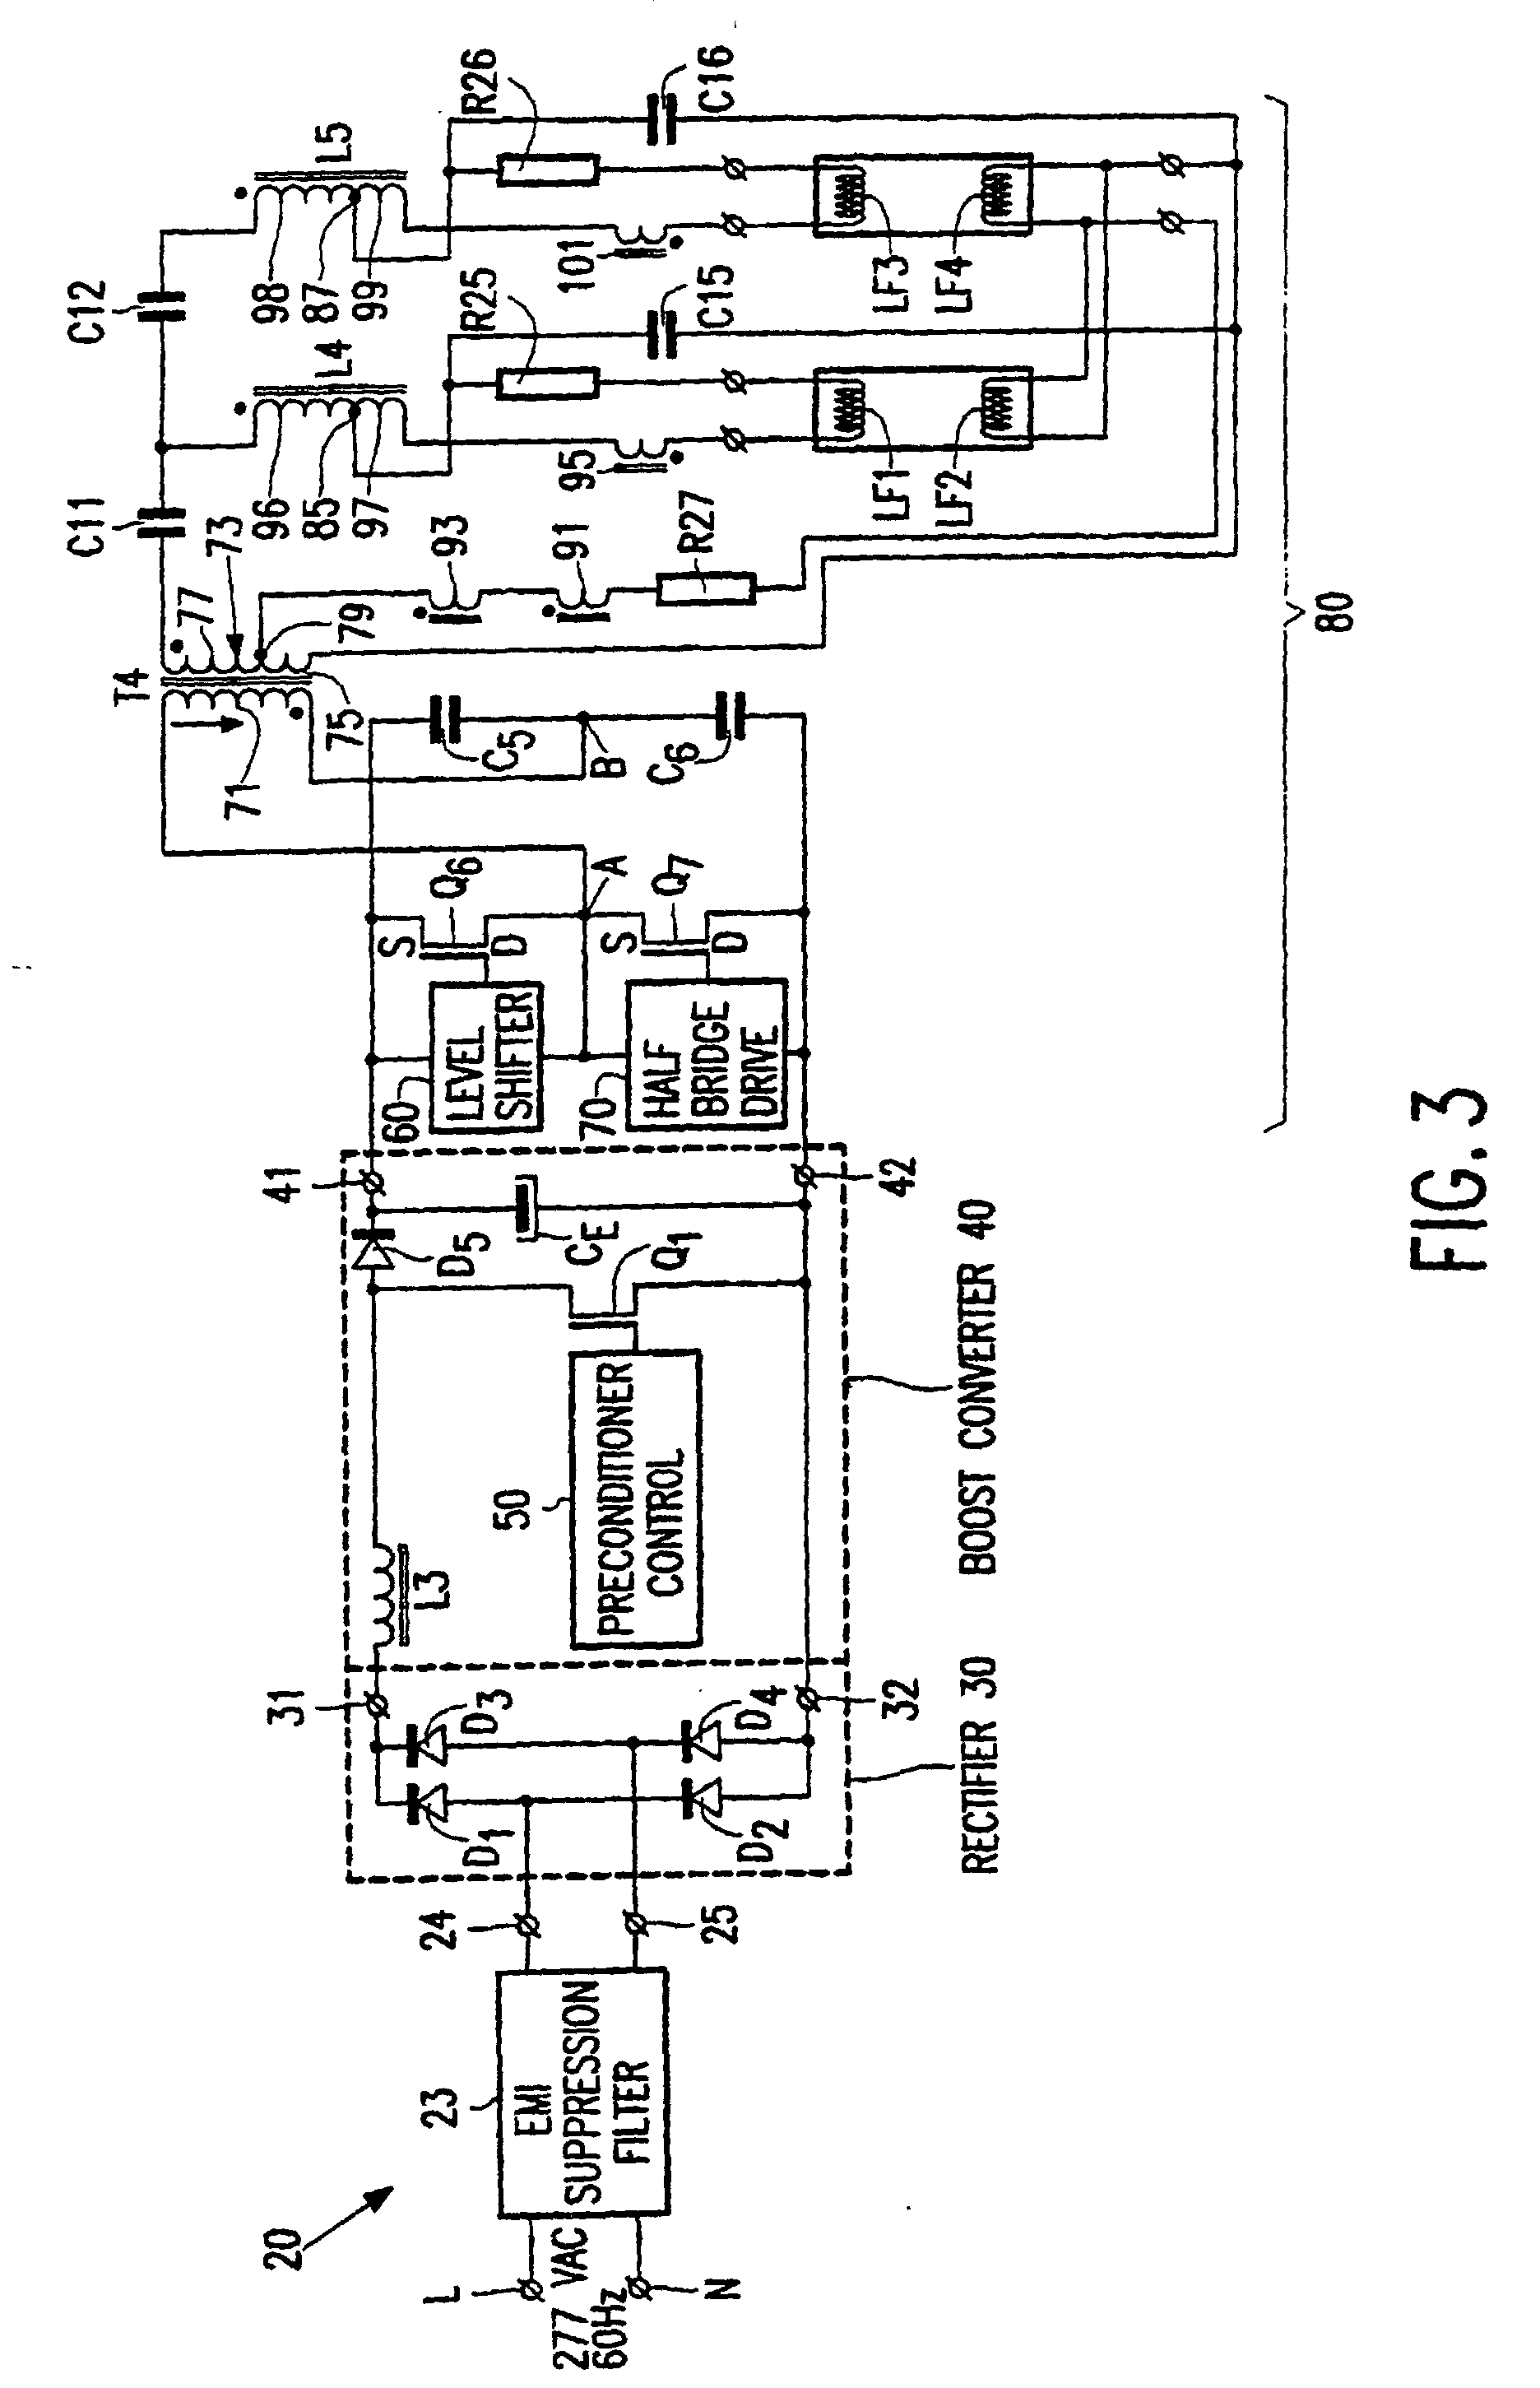 Patent Ep0774199b1 Ballast Circuit Google Patents T96 120 Volt Wiring Diagram Drawing